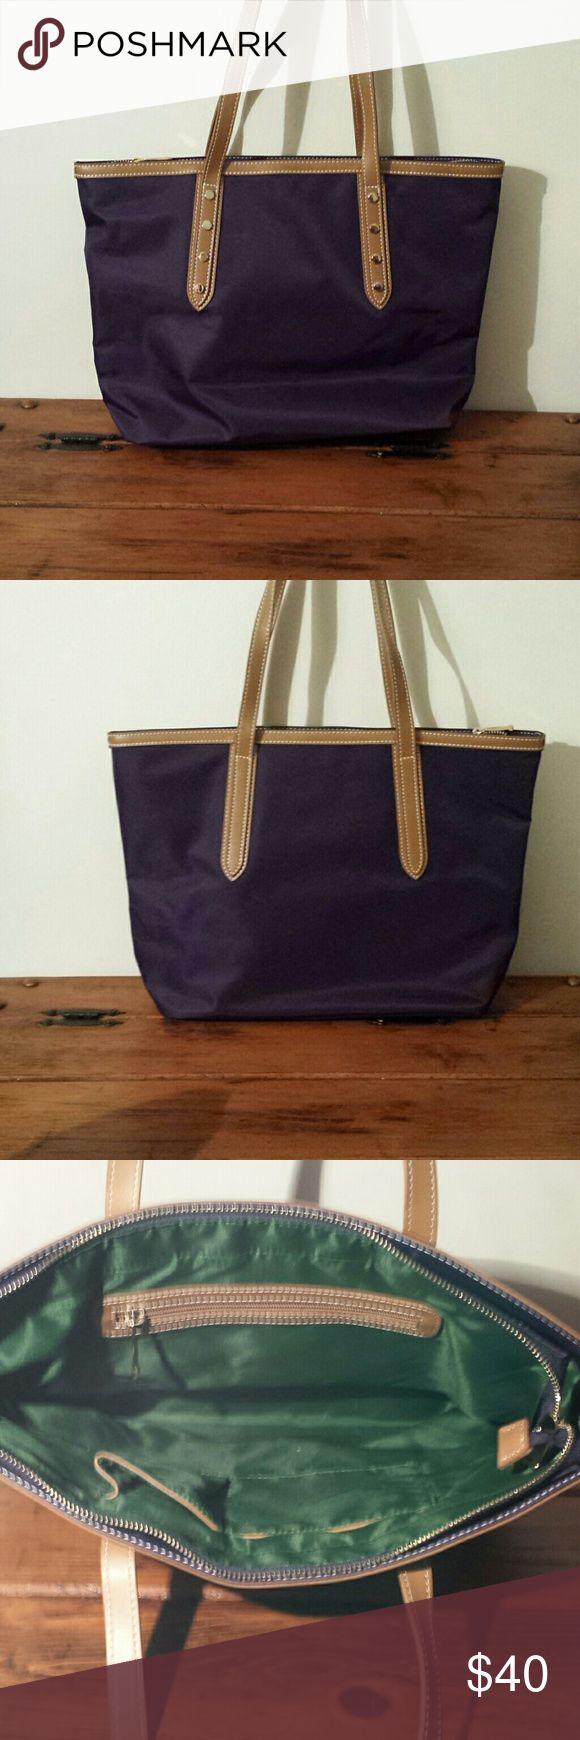 Purple nylon tote bag 16 in wide by 11 high New,purple nylon tote bag with leather straps Bags Totes